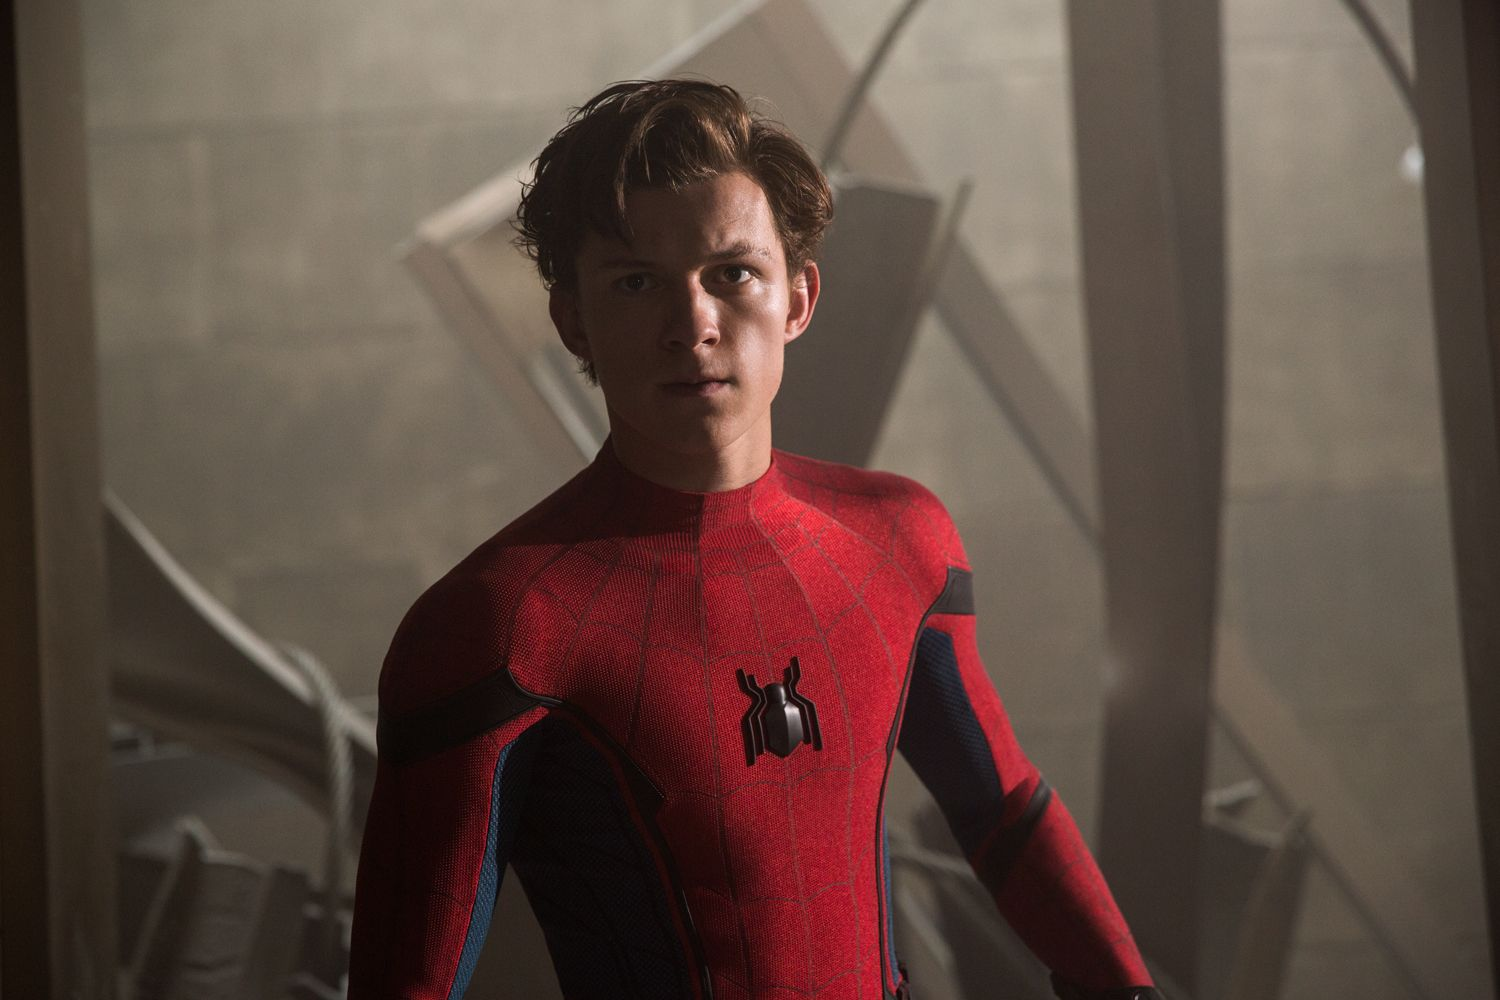 spider-man: homecoming 2 plot will send peter around the globe